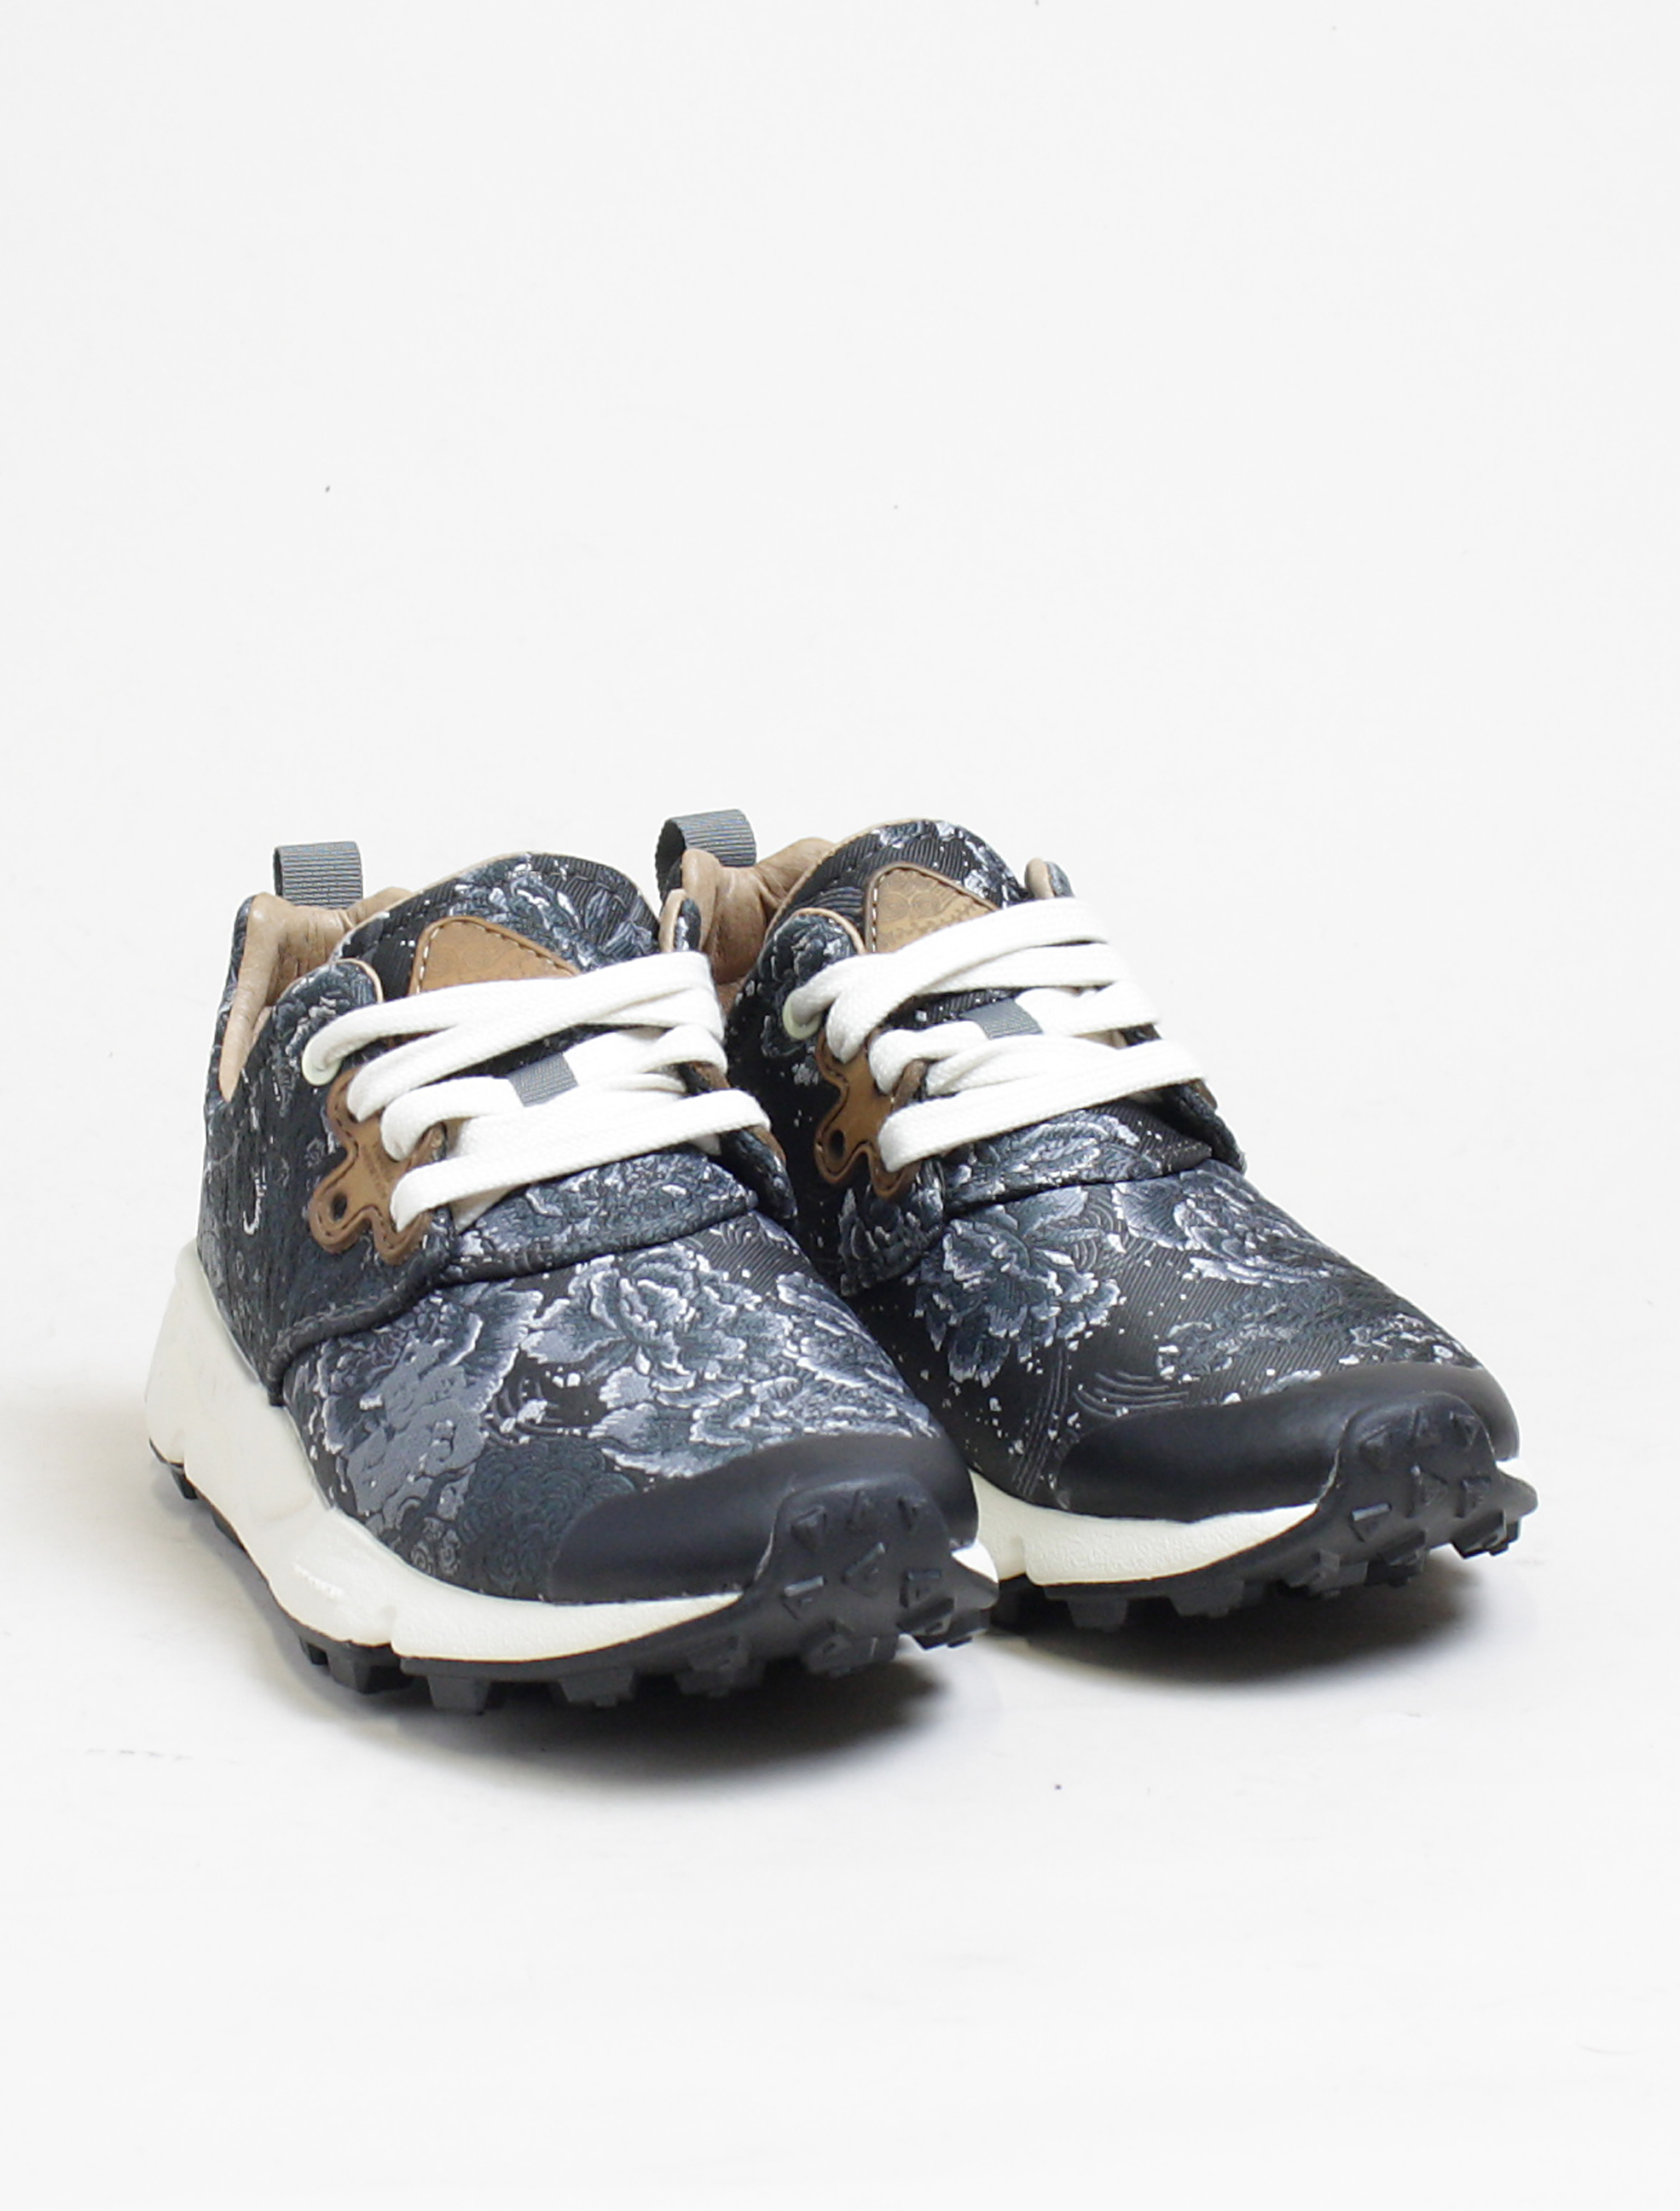 Flower Mountain sneakers Pampas black silver paio